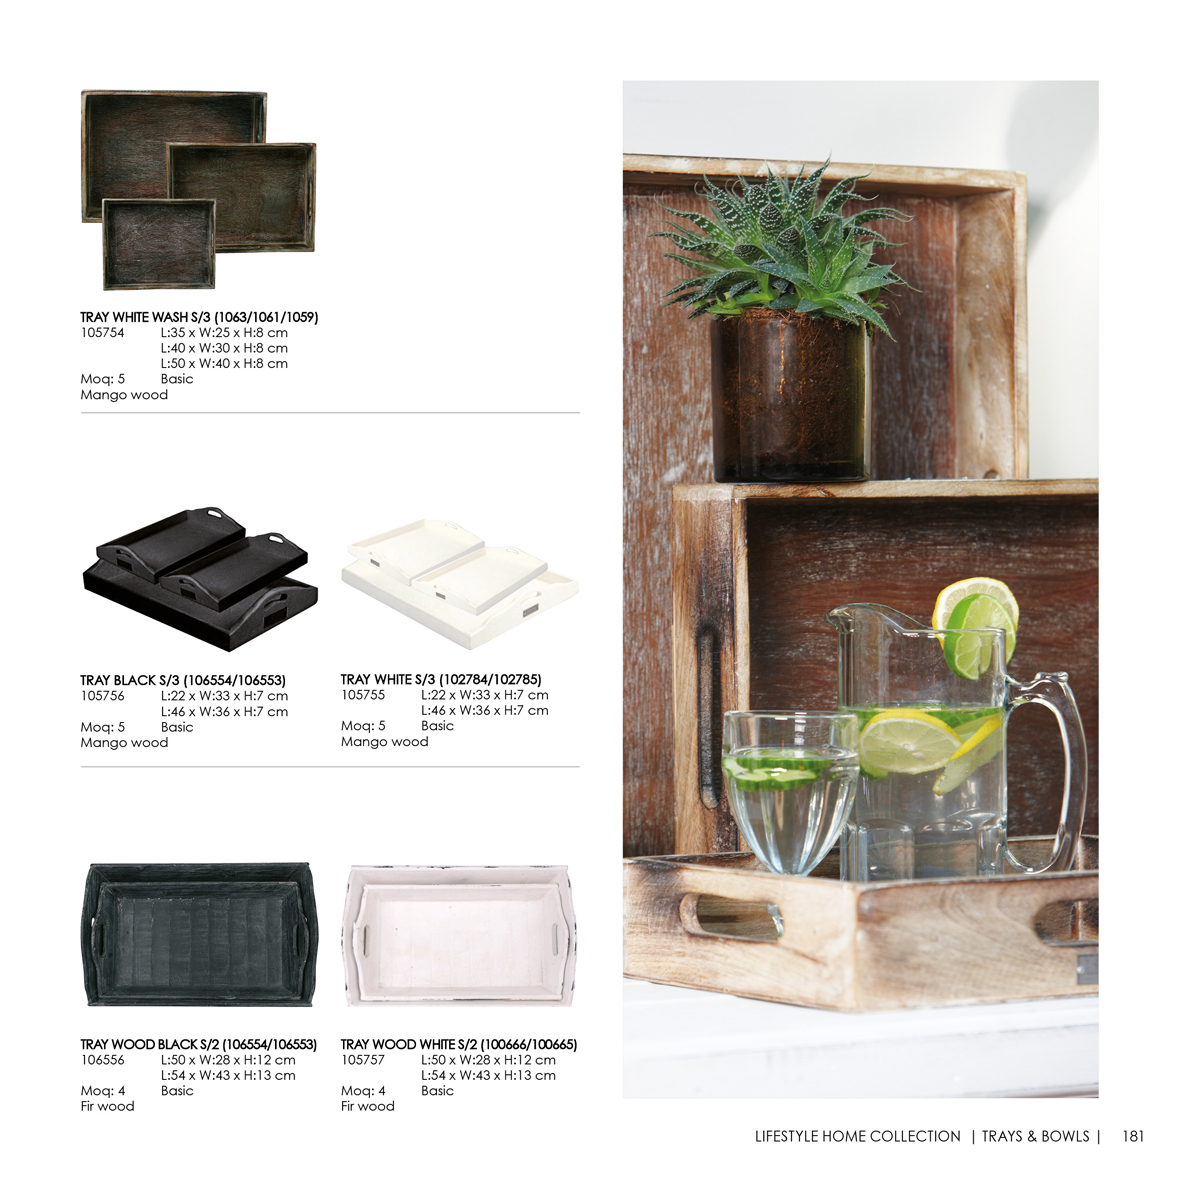 Trays bowls lifestyle home collection - Lifestyle home collection ...